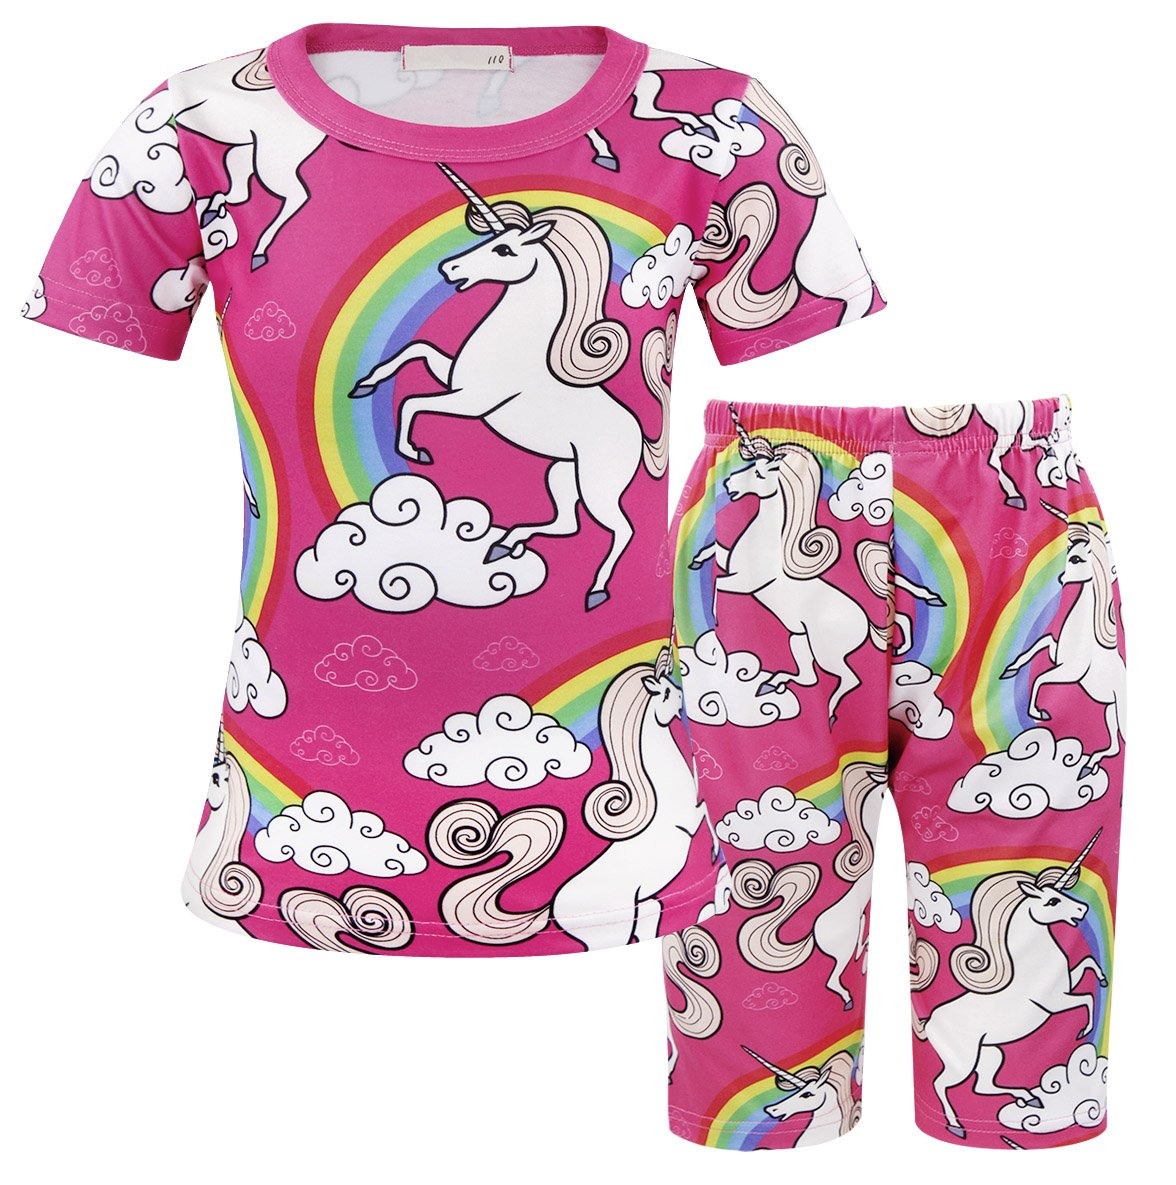 4af604c8 Galleon - AmzBarley Little Girls Pajamas Sets Unicorn 2-Piece Top And Shorts  Pyjamas PJS Sleepwear Pink Age 5-6 Years Size 6